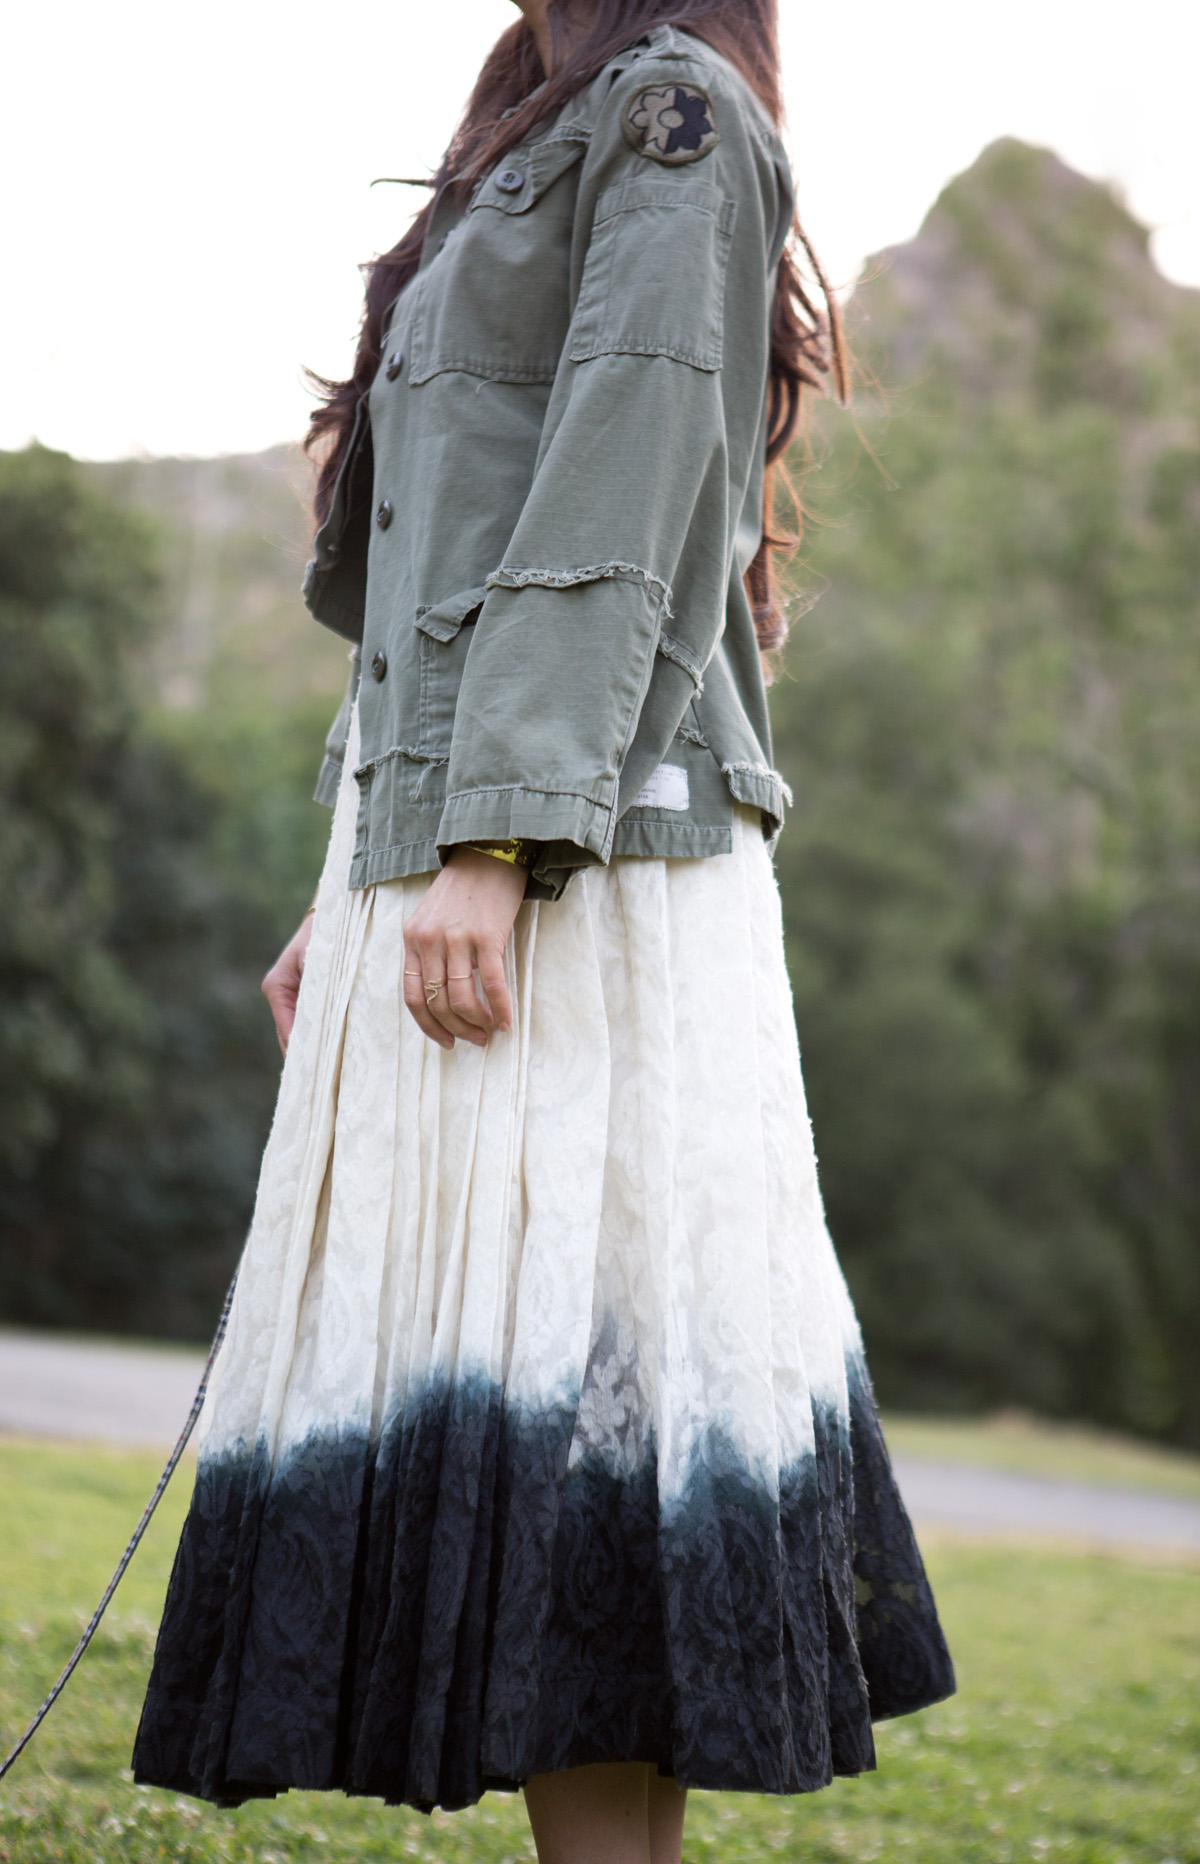 ombre full skirt, ombre skirt, ombre long skirt, dip dye skirt, white full skirt, white swirl skirt black white full skirt, black white swirl skirt, india skirt, indian long skirt, lna vneck, lna white vneck, vintage army jacket, womens vintage army jacket, womens army jacket, womens cropped army jacket, iro heels, iro sandals, iro black heels, iro black sandals, life changes, dealing with change, swirling skirt, twirling skirt, michele lobosco, photographer michele lobosco, la photo shoot, los angeles photo shoot, model on dog walk, dog and model, off duty model style, la style, los angeles style, model eyelashes, model street style, gold bodychain, gold body chain, body chain, bodychain, street style, la street style, ootd, ootn, model lips, perfect lips, camille newbern, the la survival guide, la survival guide, thelasurvivalguide, lasurvivalguide, los angeles fashion blogs, los angeles style blogs, drybar, drybar model, drybar blowout, long hair blowout, blushington, blushington weho, blushington makeup, papillon, papillon dog, eurasian models, eurasian actresses, shopping los angeles, shopping la, modeling la, modeling los angeles, jouer grace, xiv karats, xiv karats necklace, xiv karats diamond necklace, catbird rings, artelier world cuff, map cuff, griffith park photo shoot